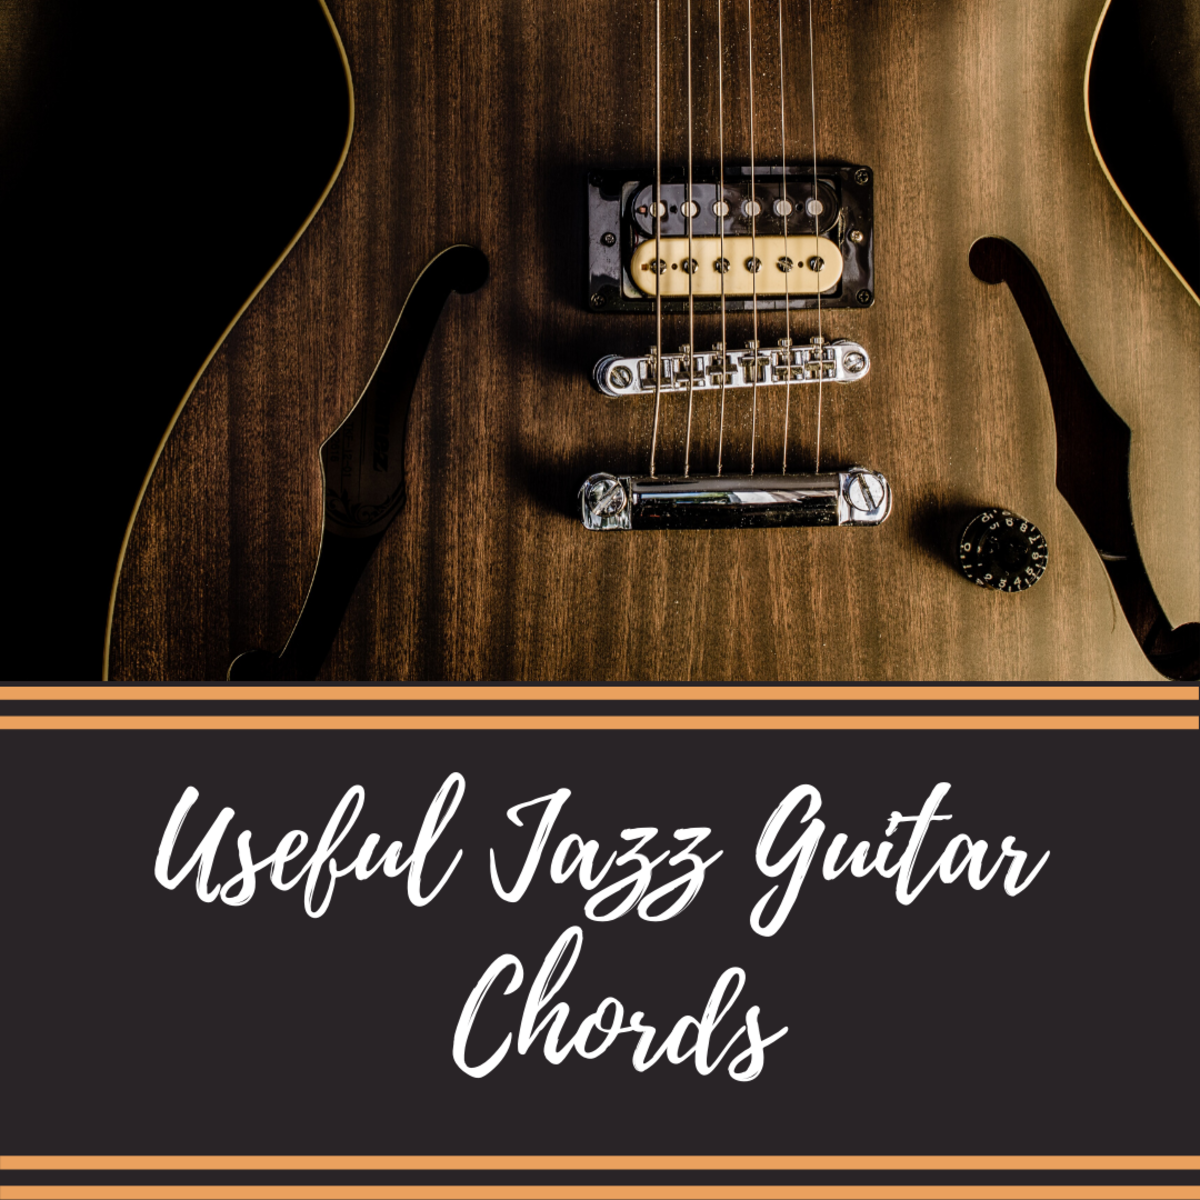 You can use these jazz chords any time, any day.